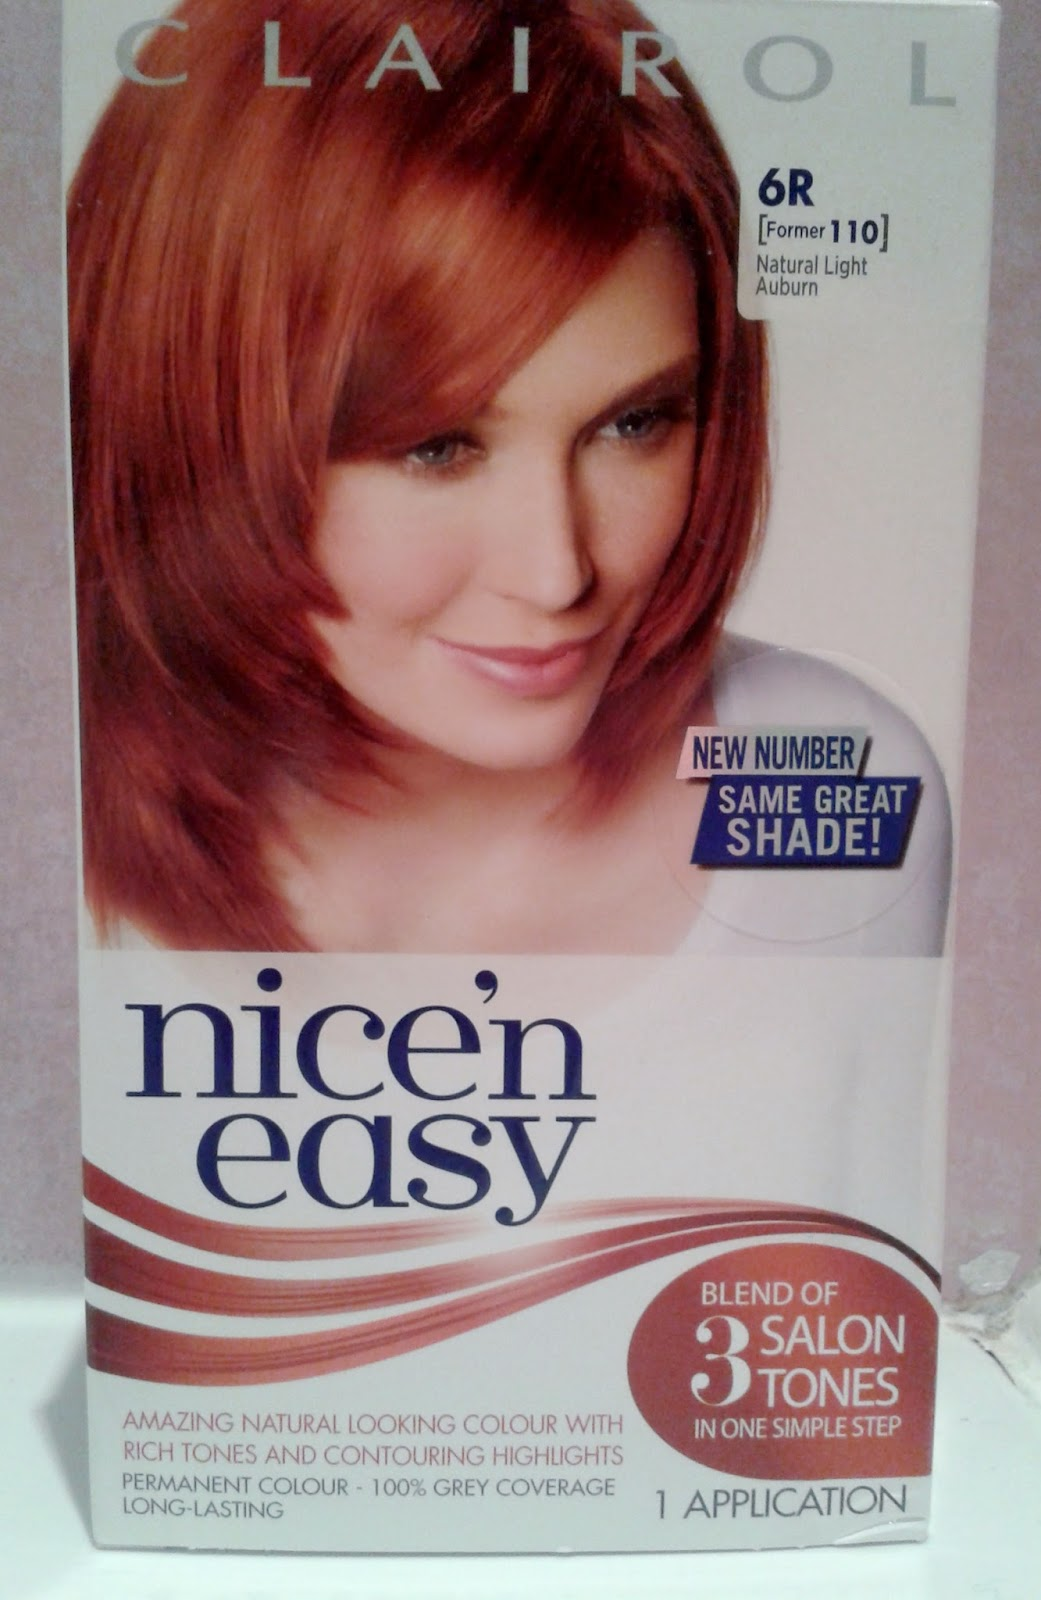 Clairol Natural Light Auburn